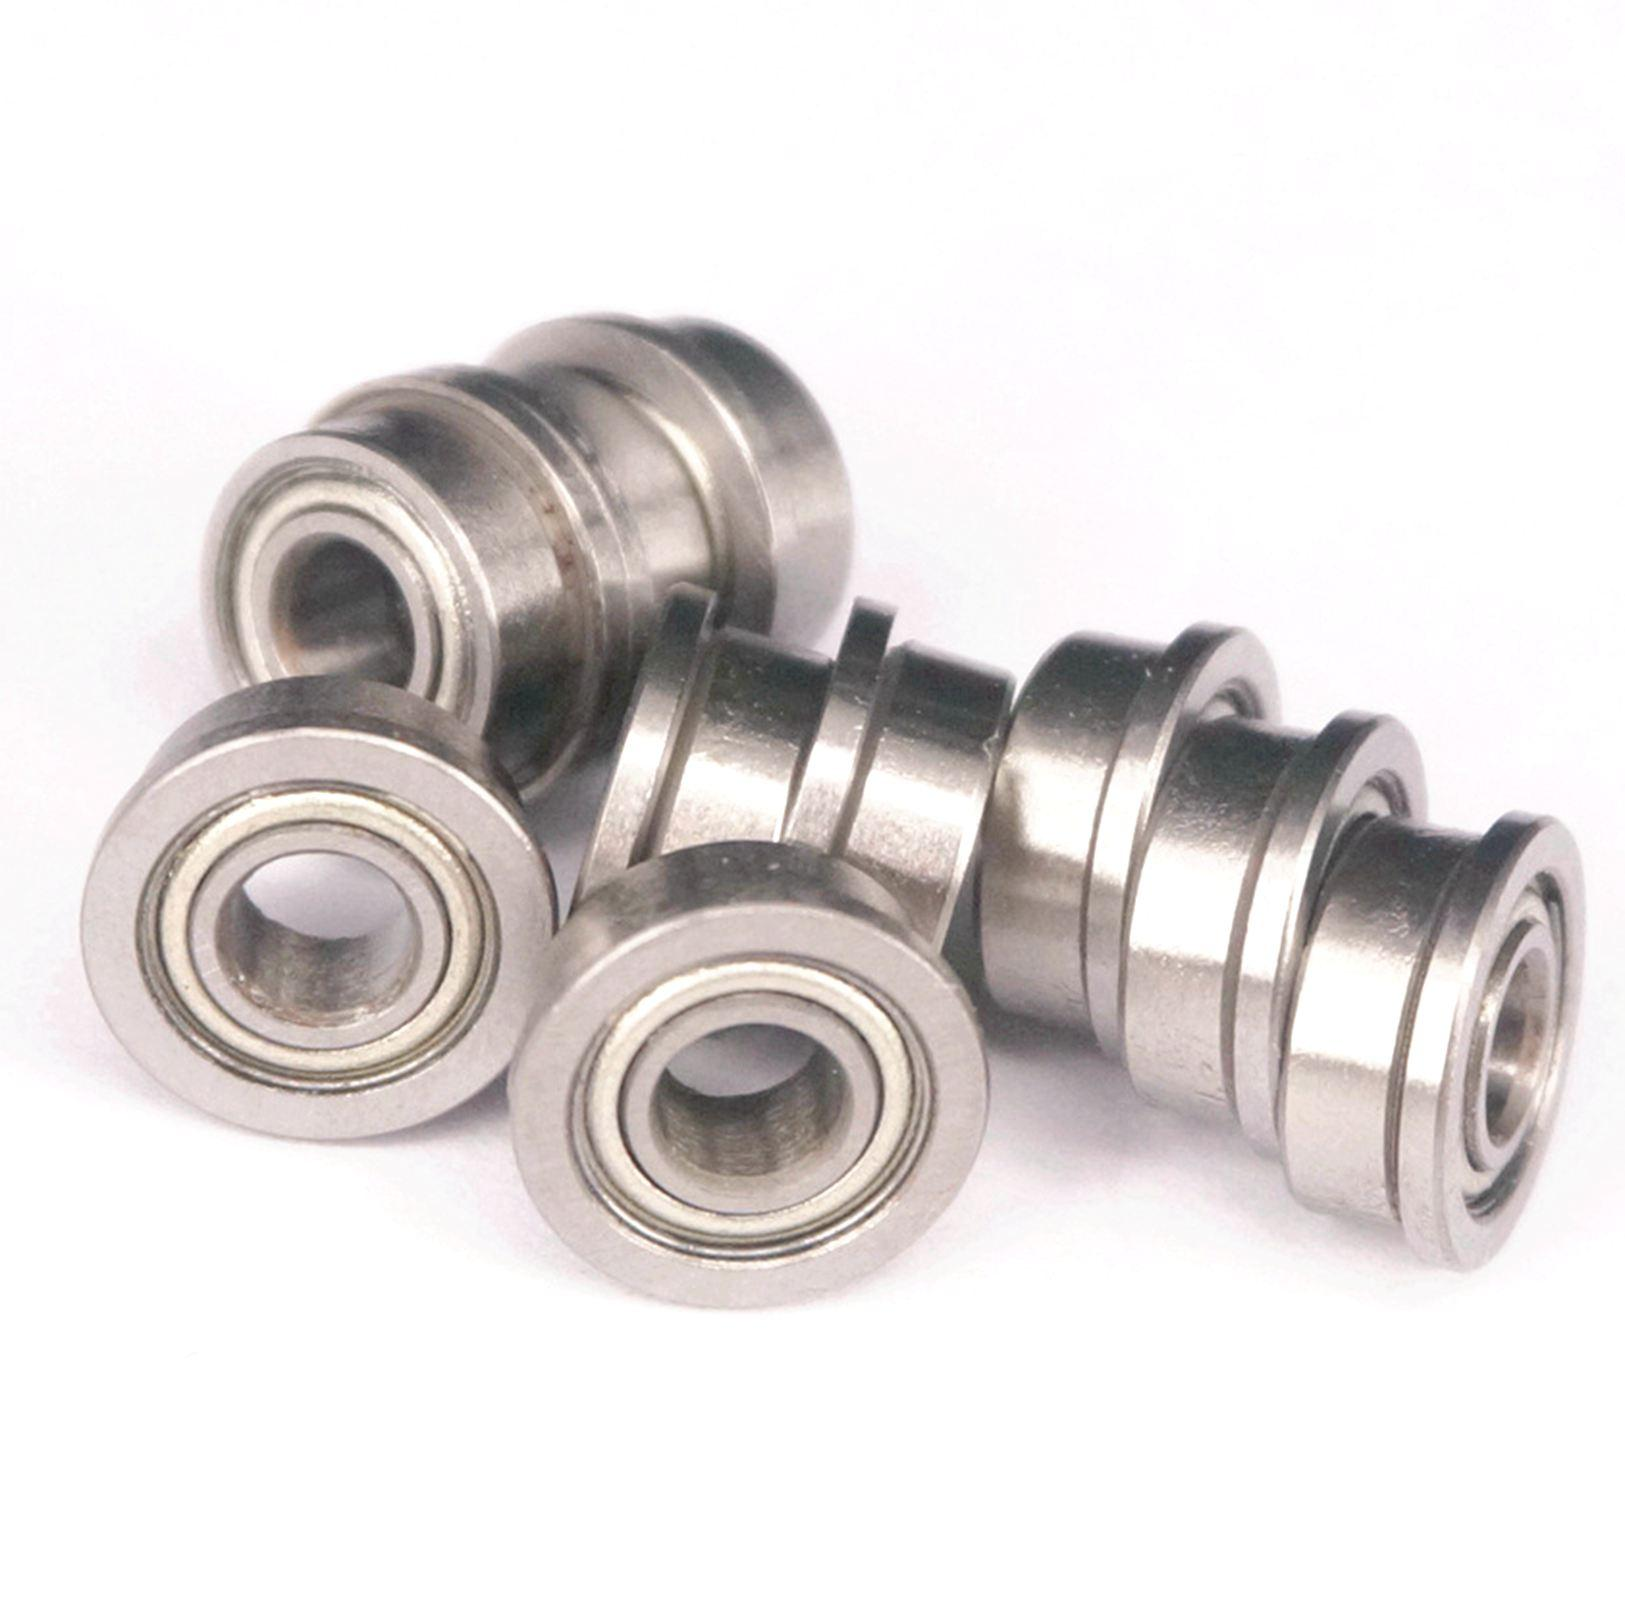 10pcs F684ZZ 4x9x4mm ABEC1 Metal Shielded Deep Groove Flanged Flange Bearing Toy DIY TrundleLow Speed Transmission